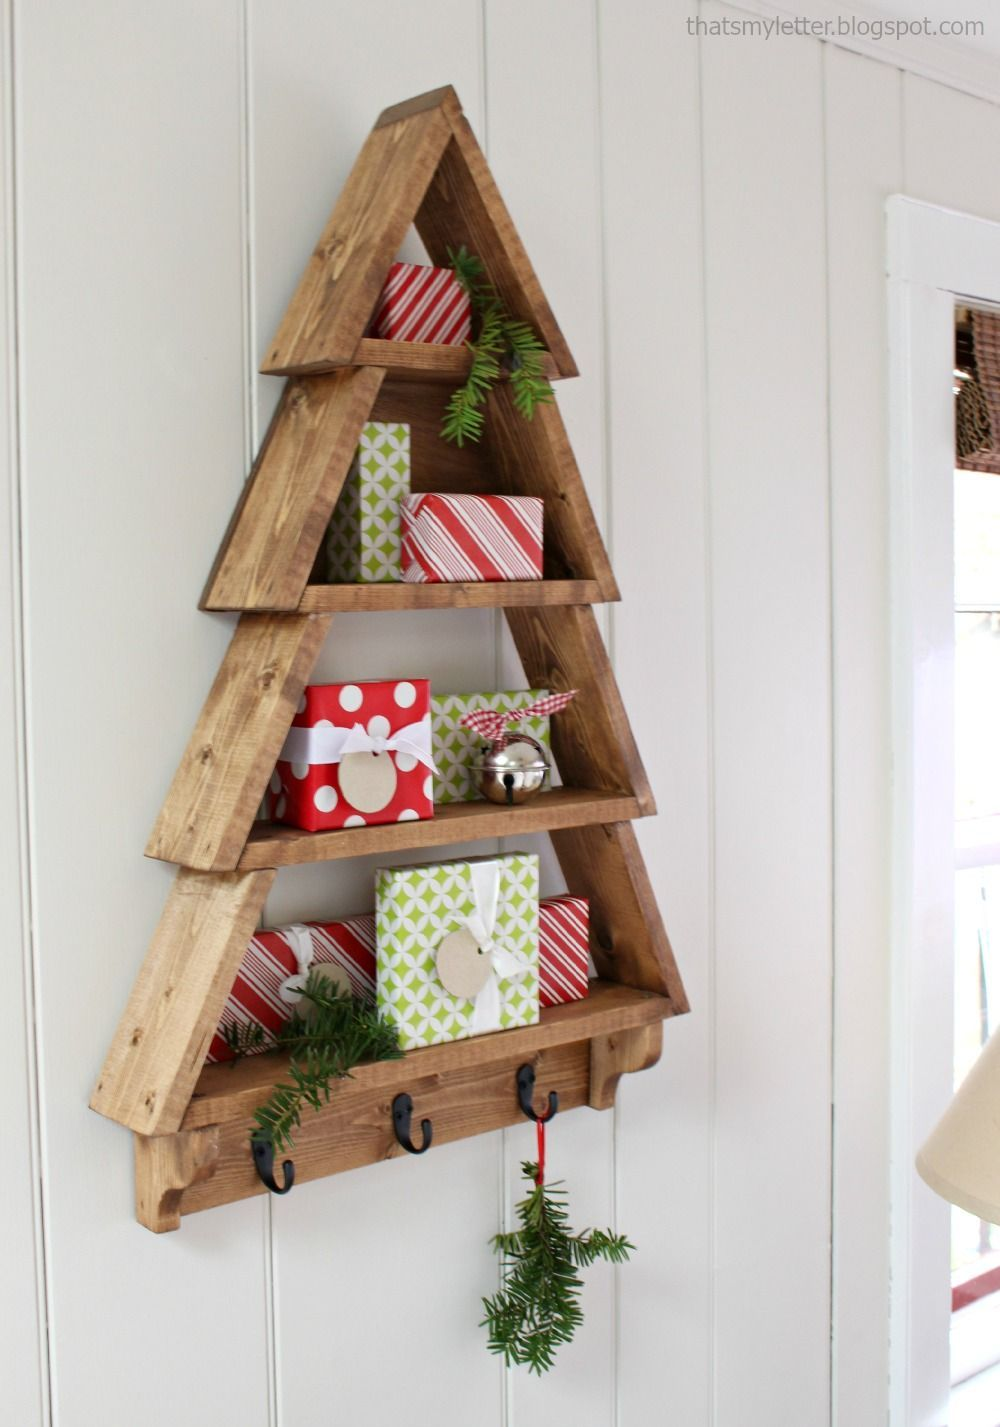 Build A Tree Wall Shelf Woodworking Projects Pinterest